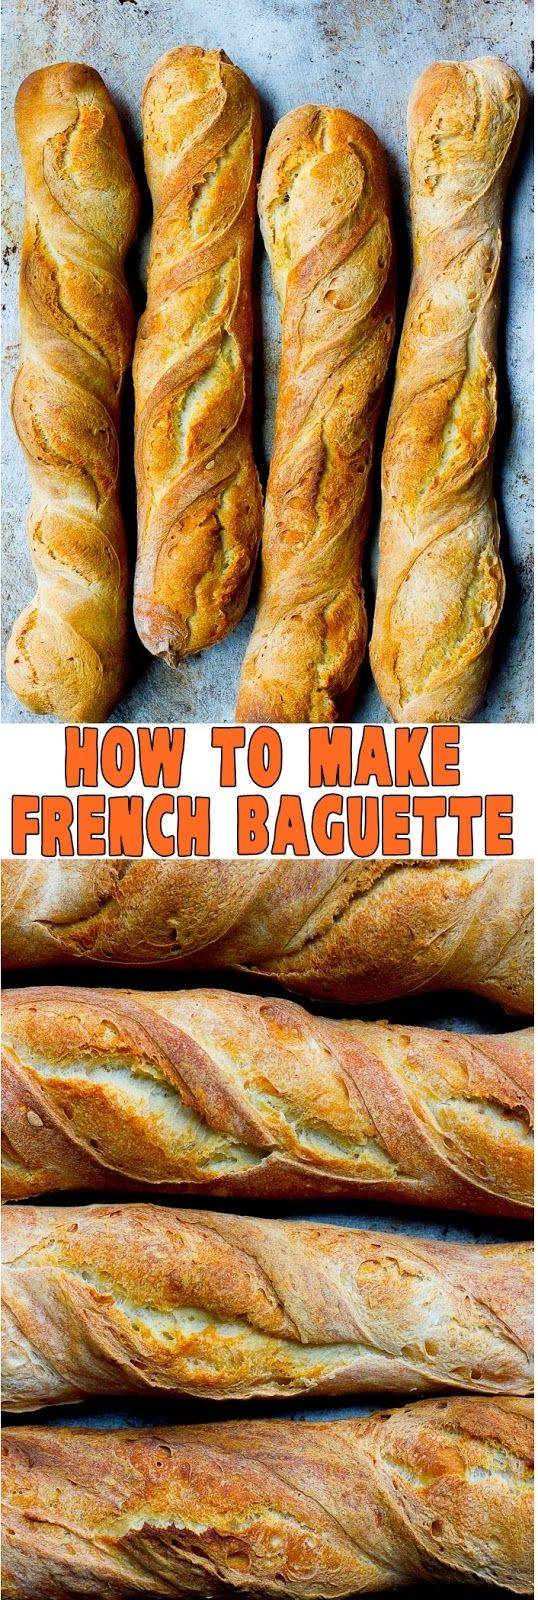 HOW TO MAKE FRENCH BAGUETTE  Chicken slow cooker recipes, Cooking